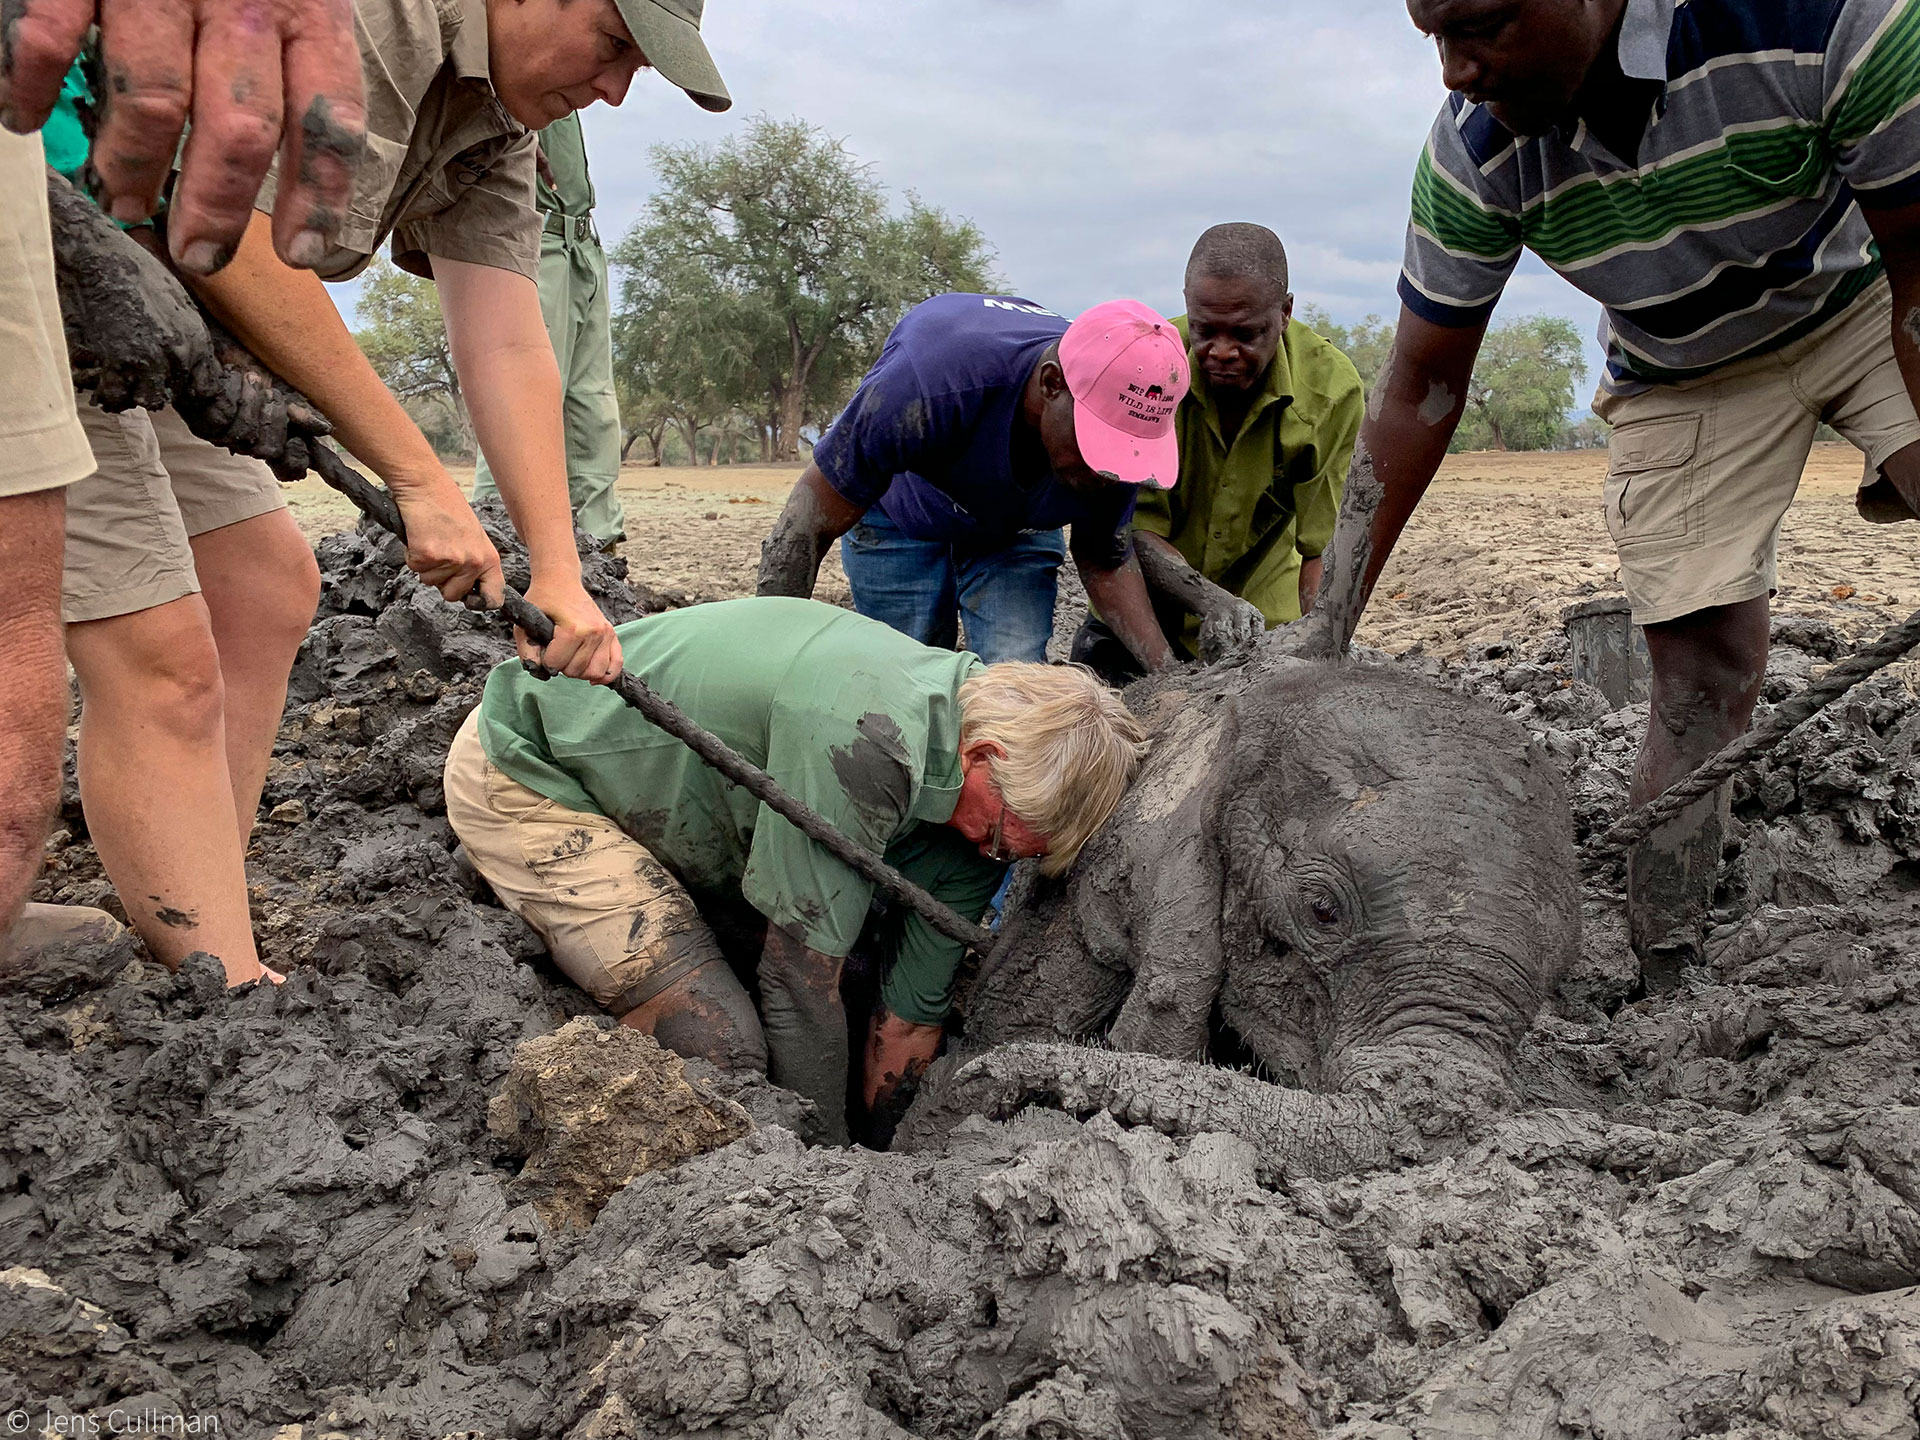 Baby elephants rescued